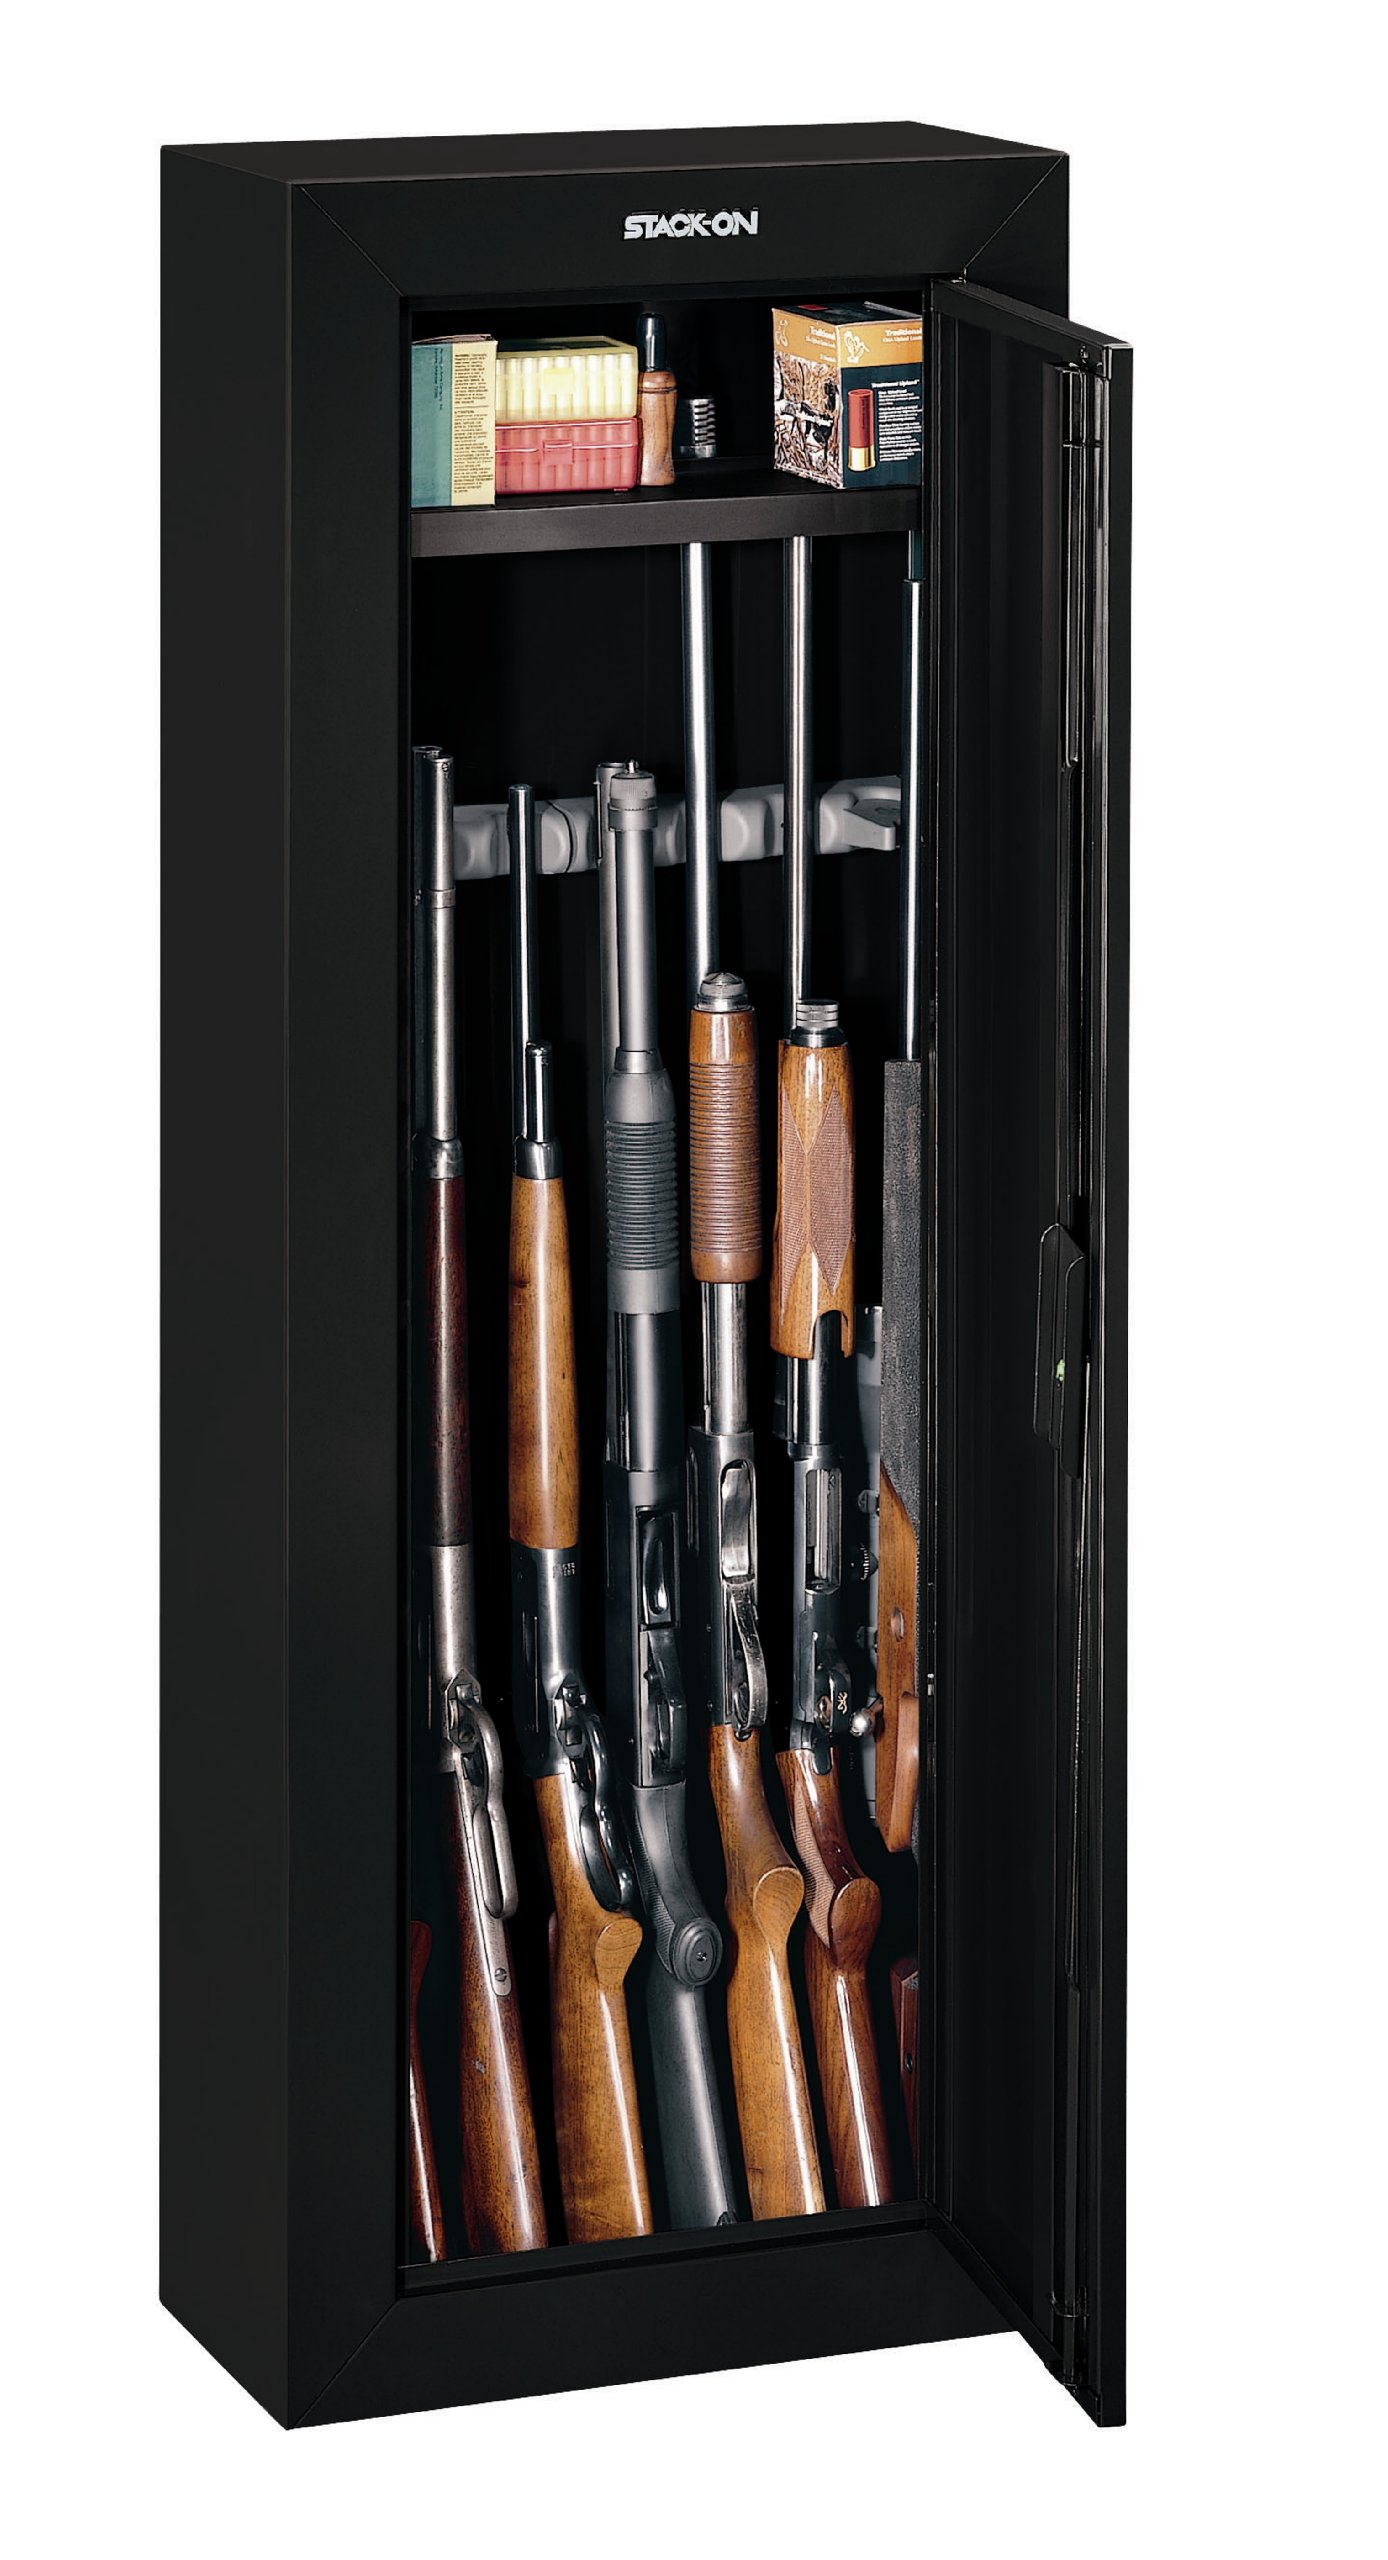 Stack-On GCB-908 Steel 8-Gun Security Cabinet, Black